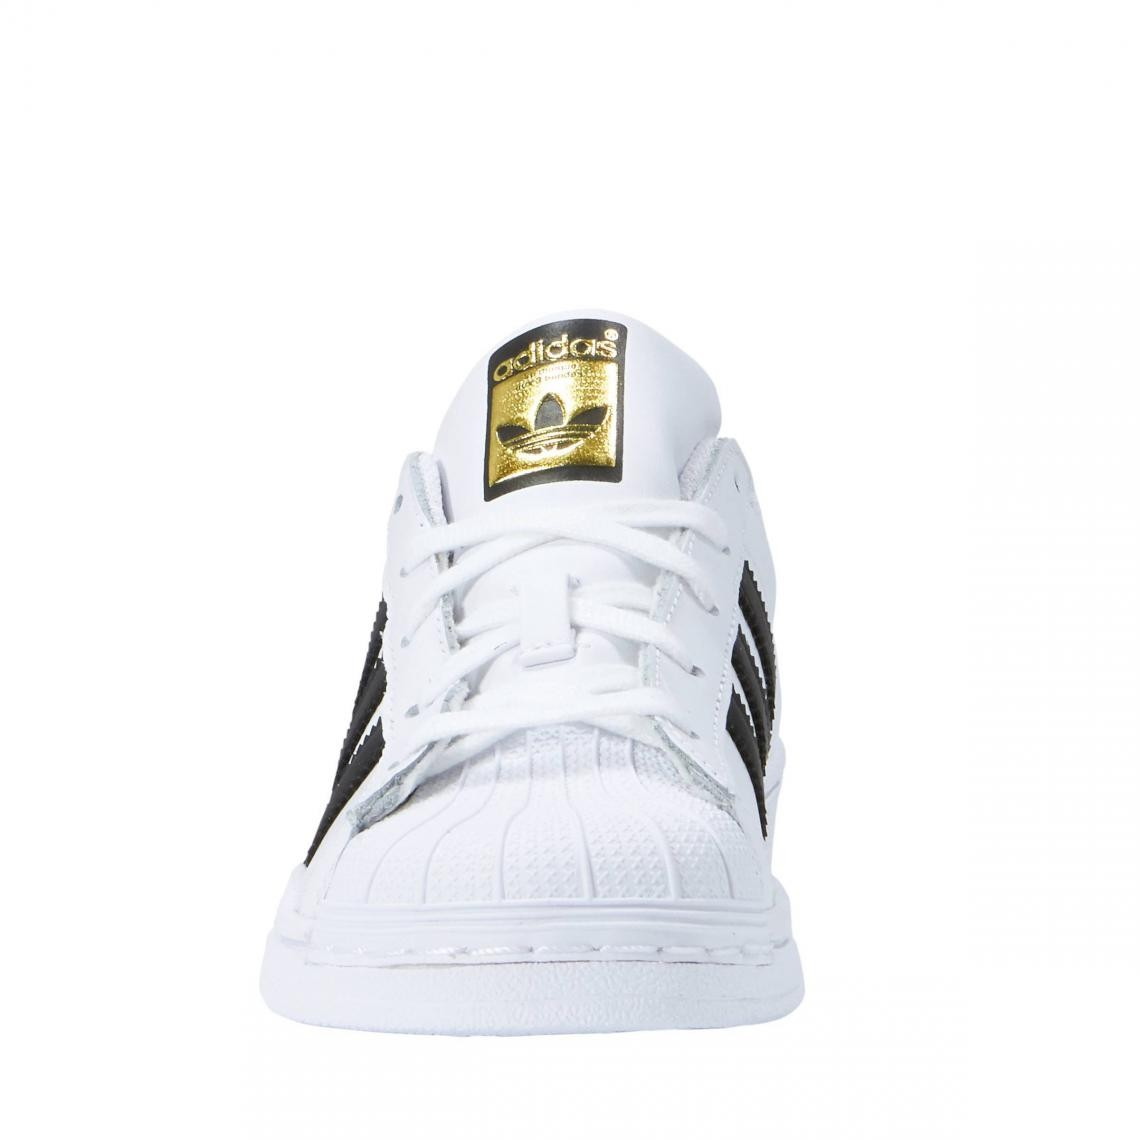 Baskets Superstar Adidas Originals homme